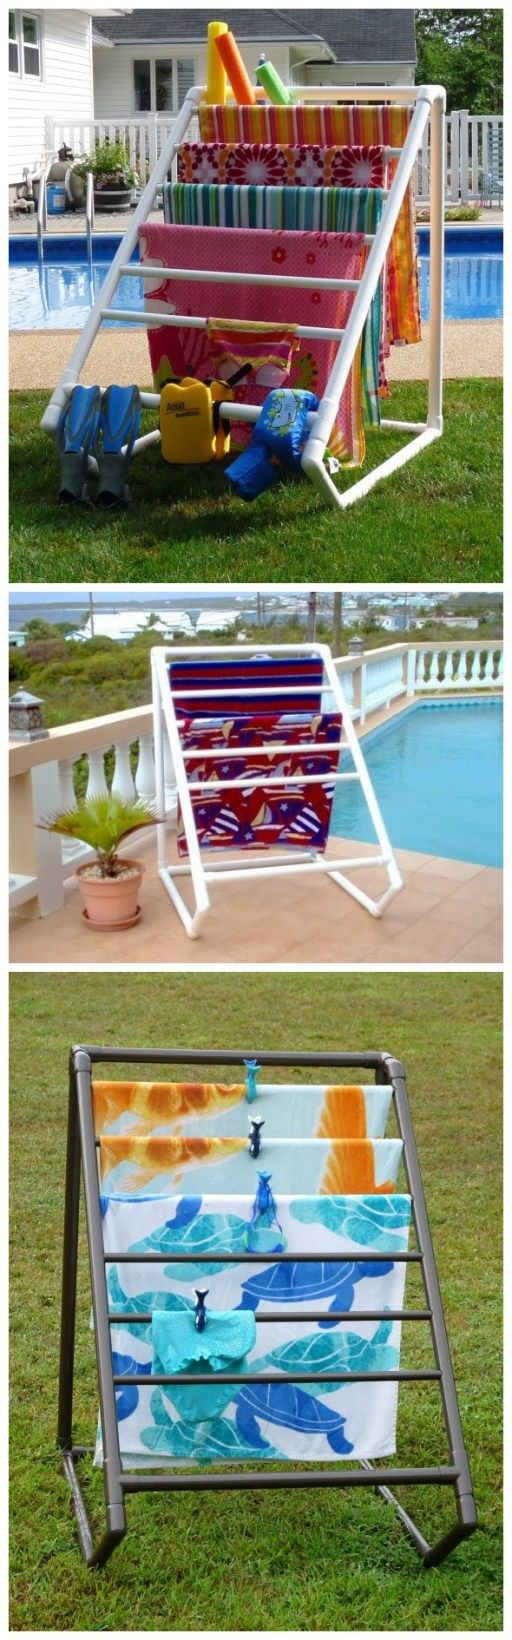 PVC pipes are easy and economical to